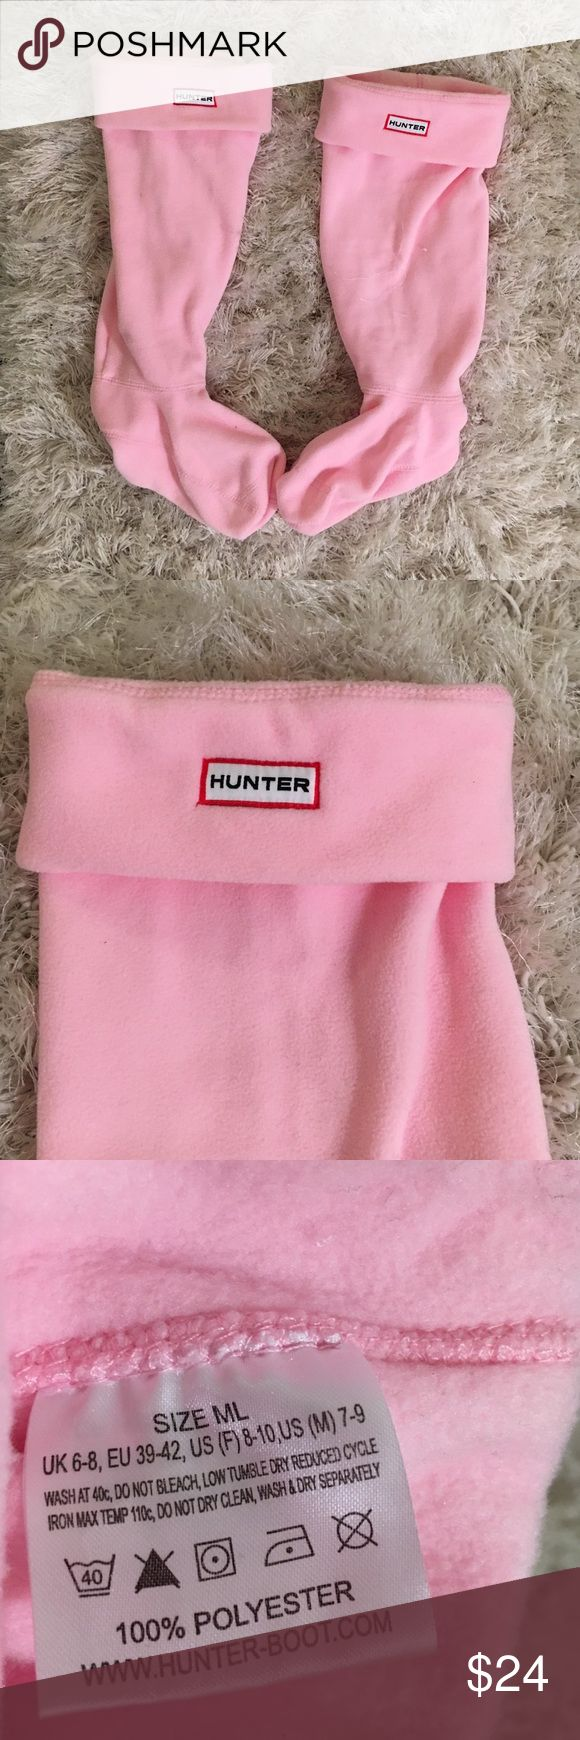 NWOT Hunter Welly socks 💞 Light pink, never worn, perfect condition, no box! Feel free to make an offer ☺️🌇 Hunter Boots Accessories